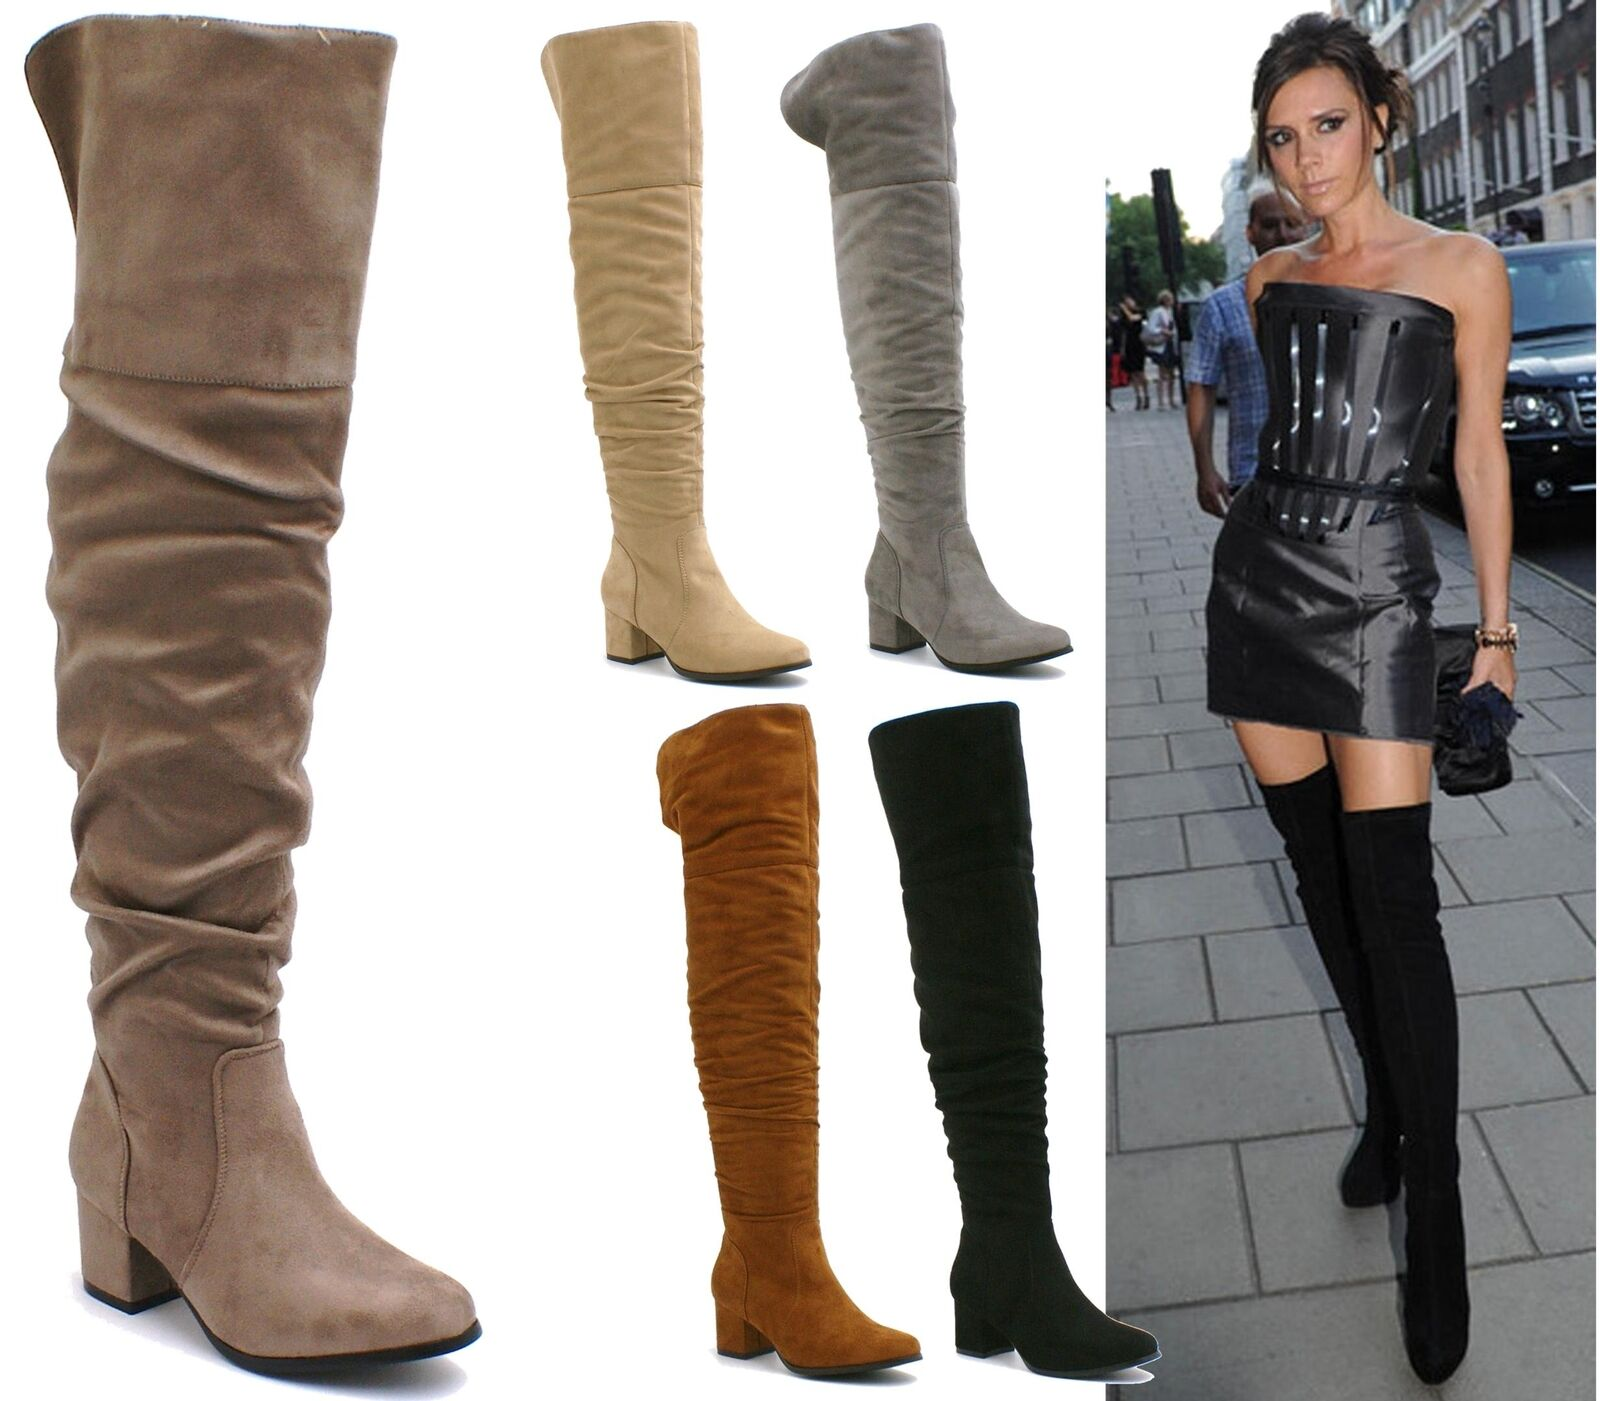 LADIES WOMENS OVER THE KNEE THIGH HIGH MID LOW HEEL FOLD OVER LONG BOOTS SHOES